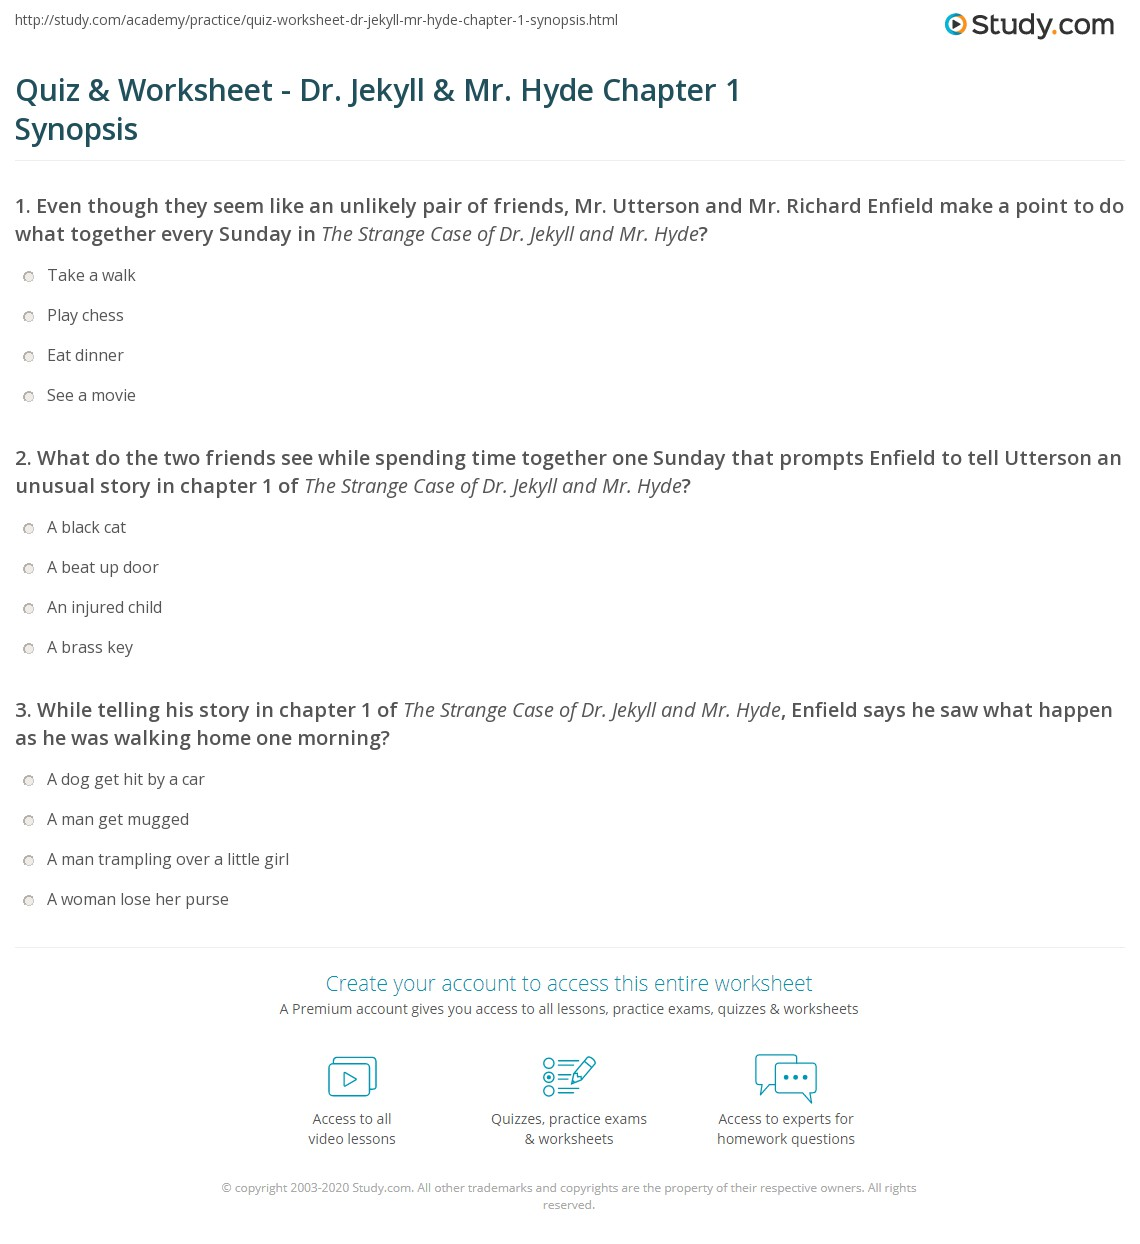 quiz worksheet dr jekyll mr hyde chapter synopsis   spending time together one sunday that prompts enfield to tell utterson an unusual story in chapter 1 of the strange case of dr jekyll and mr hyde